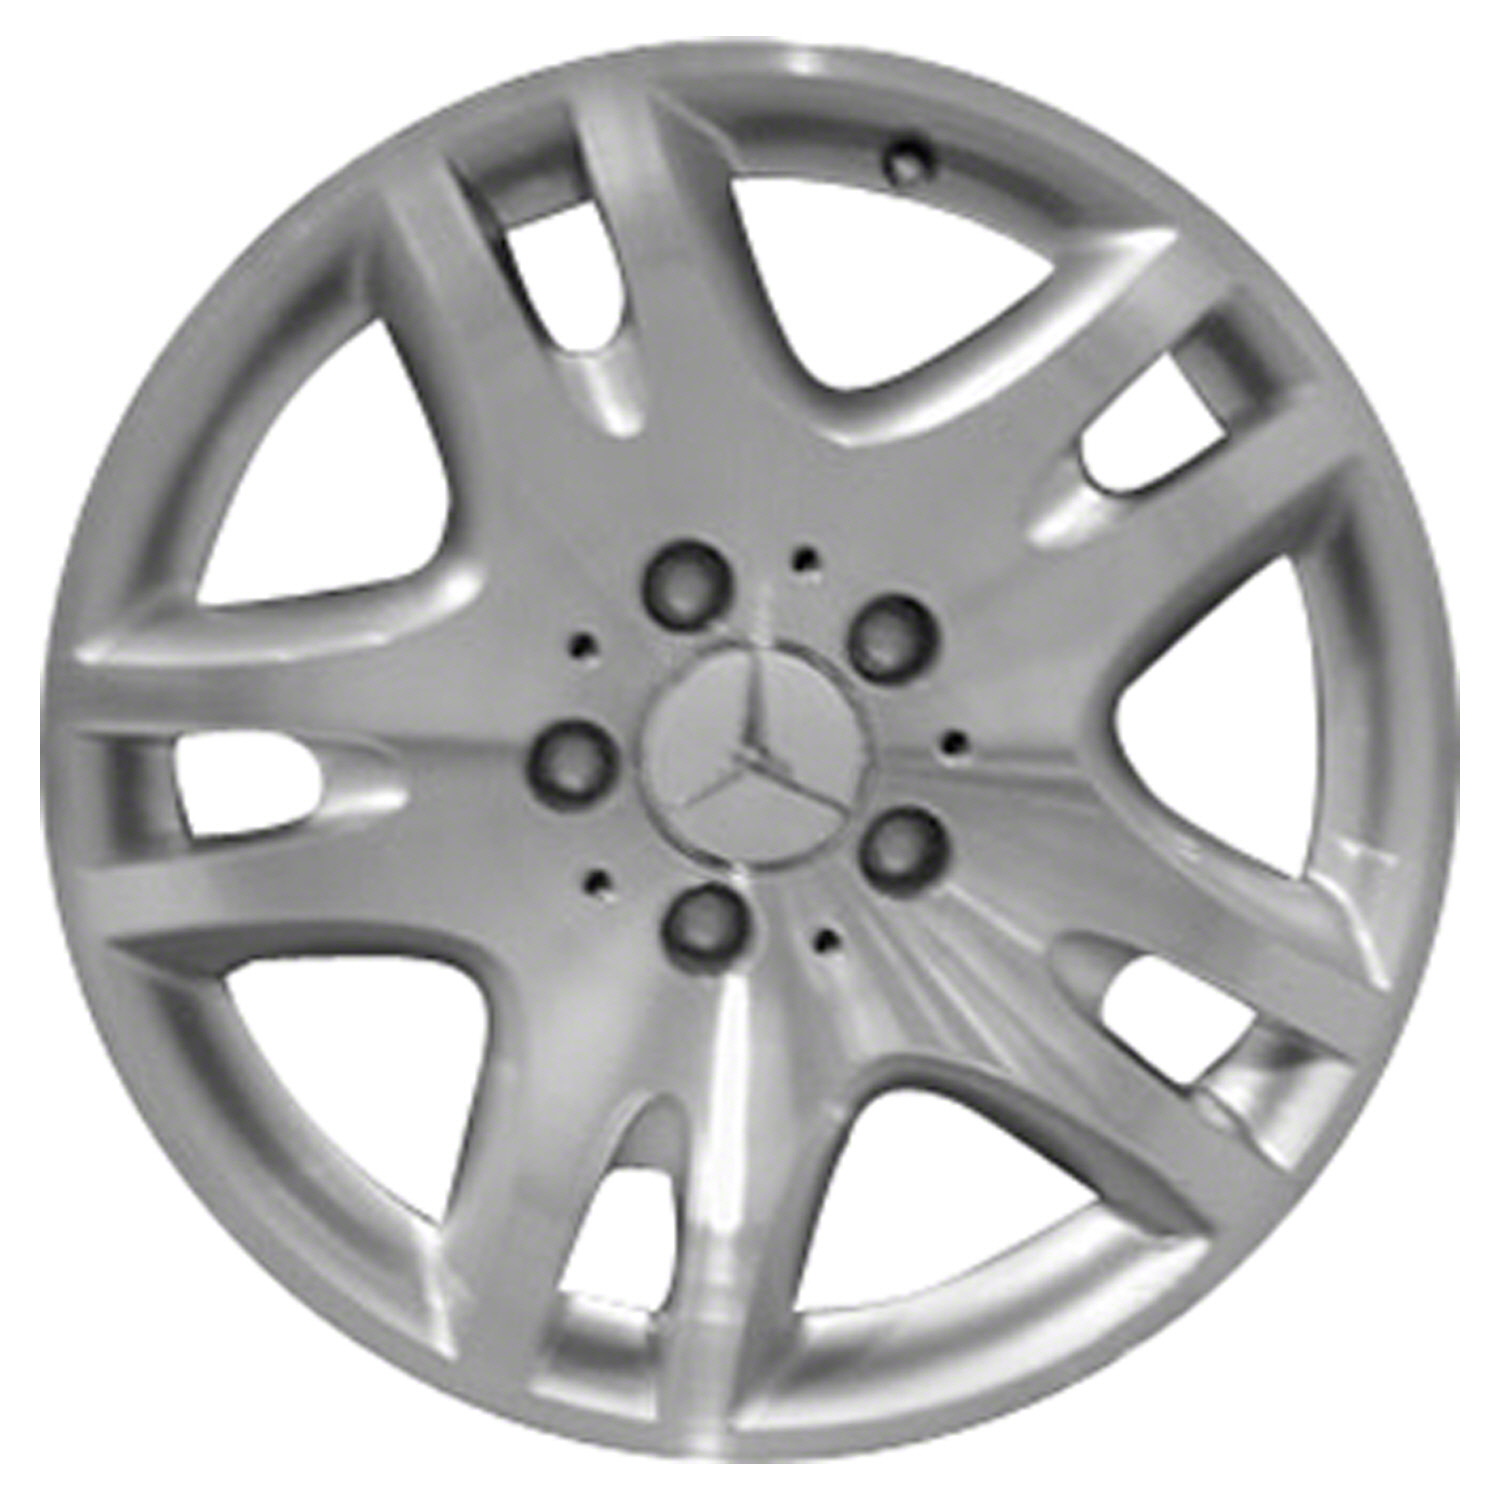 Chrome mercedes benz e350 wheels for sale through for Chrome rims for mercedes benz